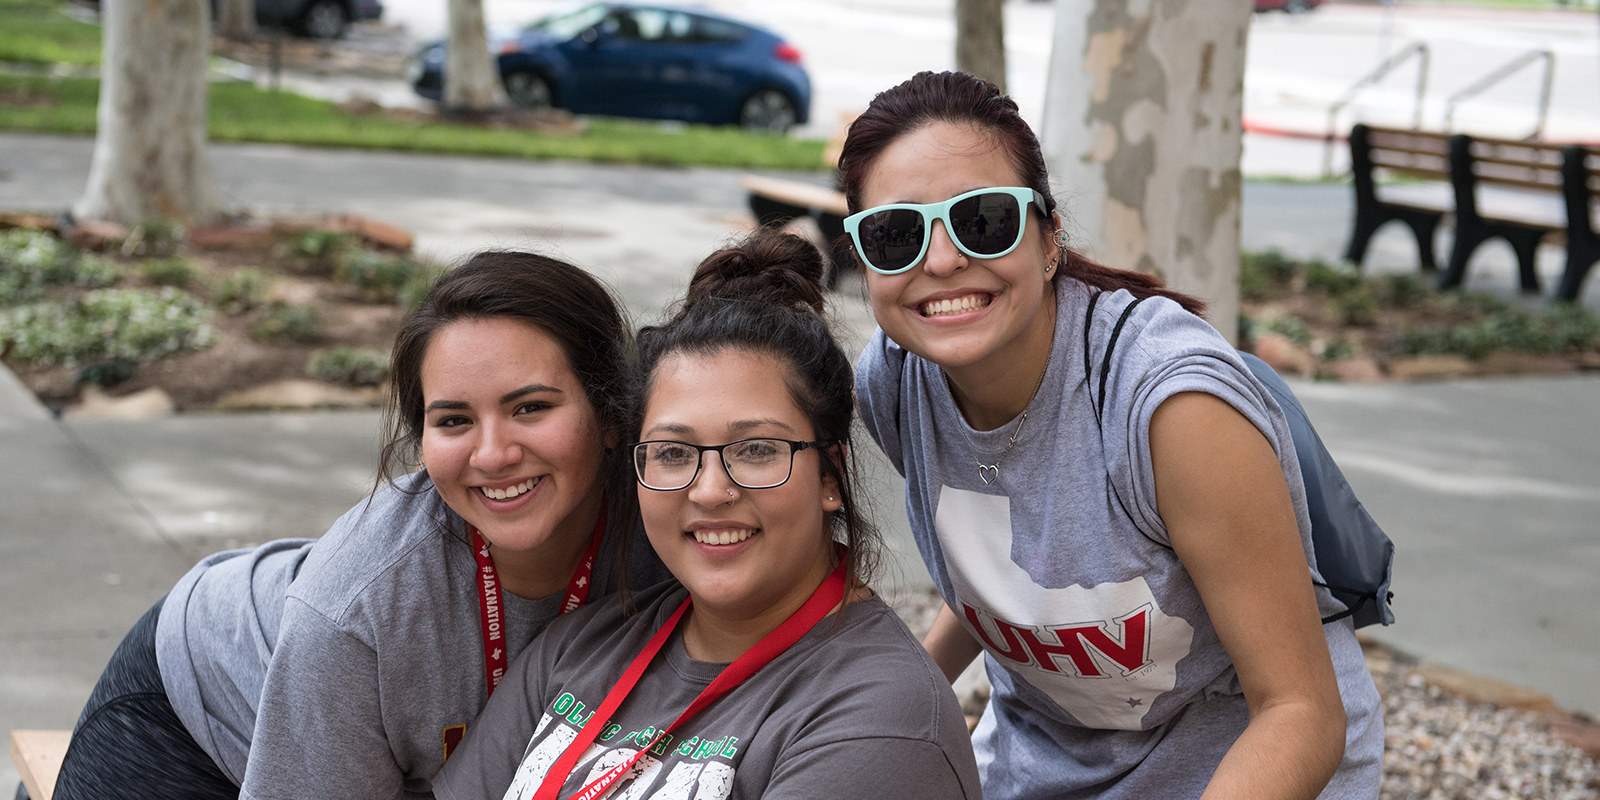 Three students pose together at UHV event